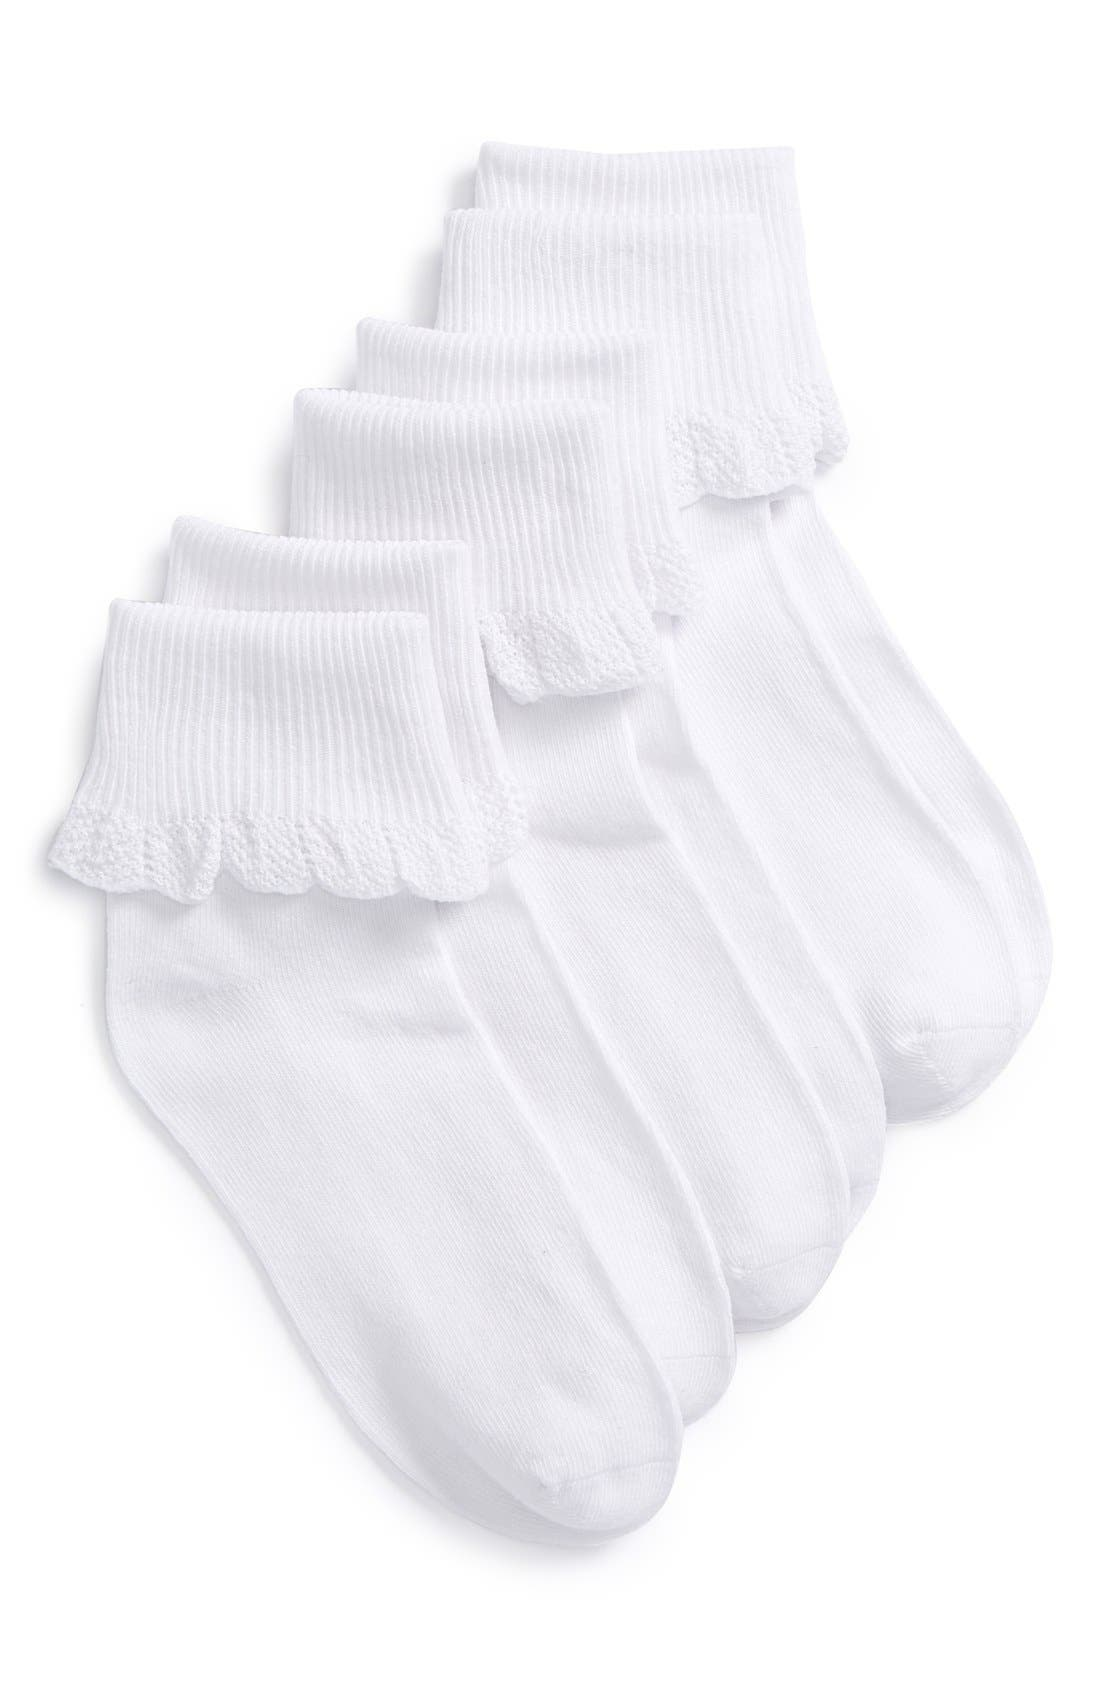 3-Pack Socks,                         Main,                         color, White